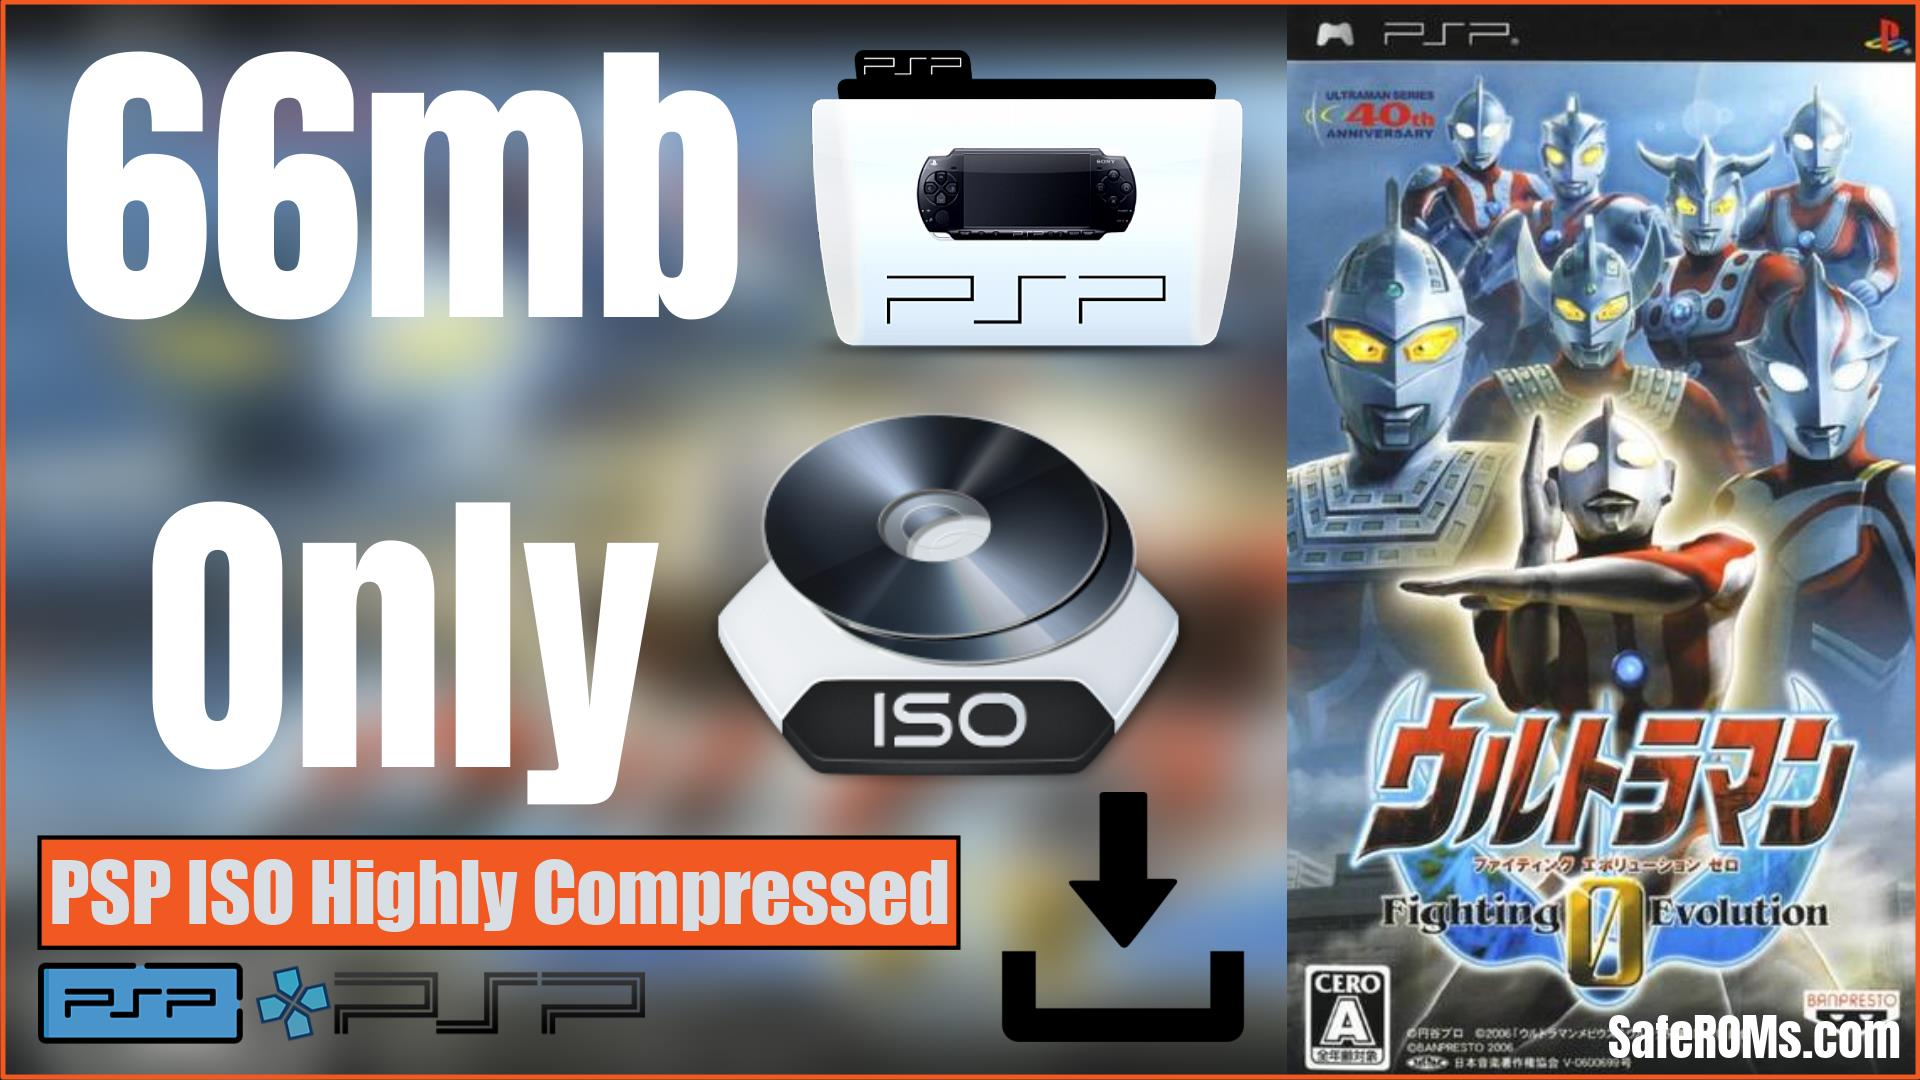 Ultraman Fighting Evolution 0 PSP ISO Highly Compressed Download